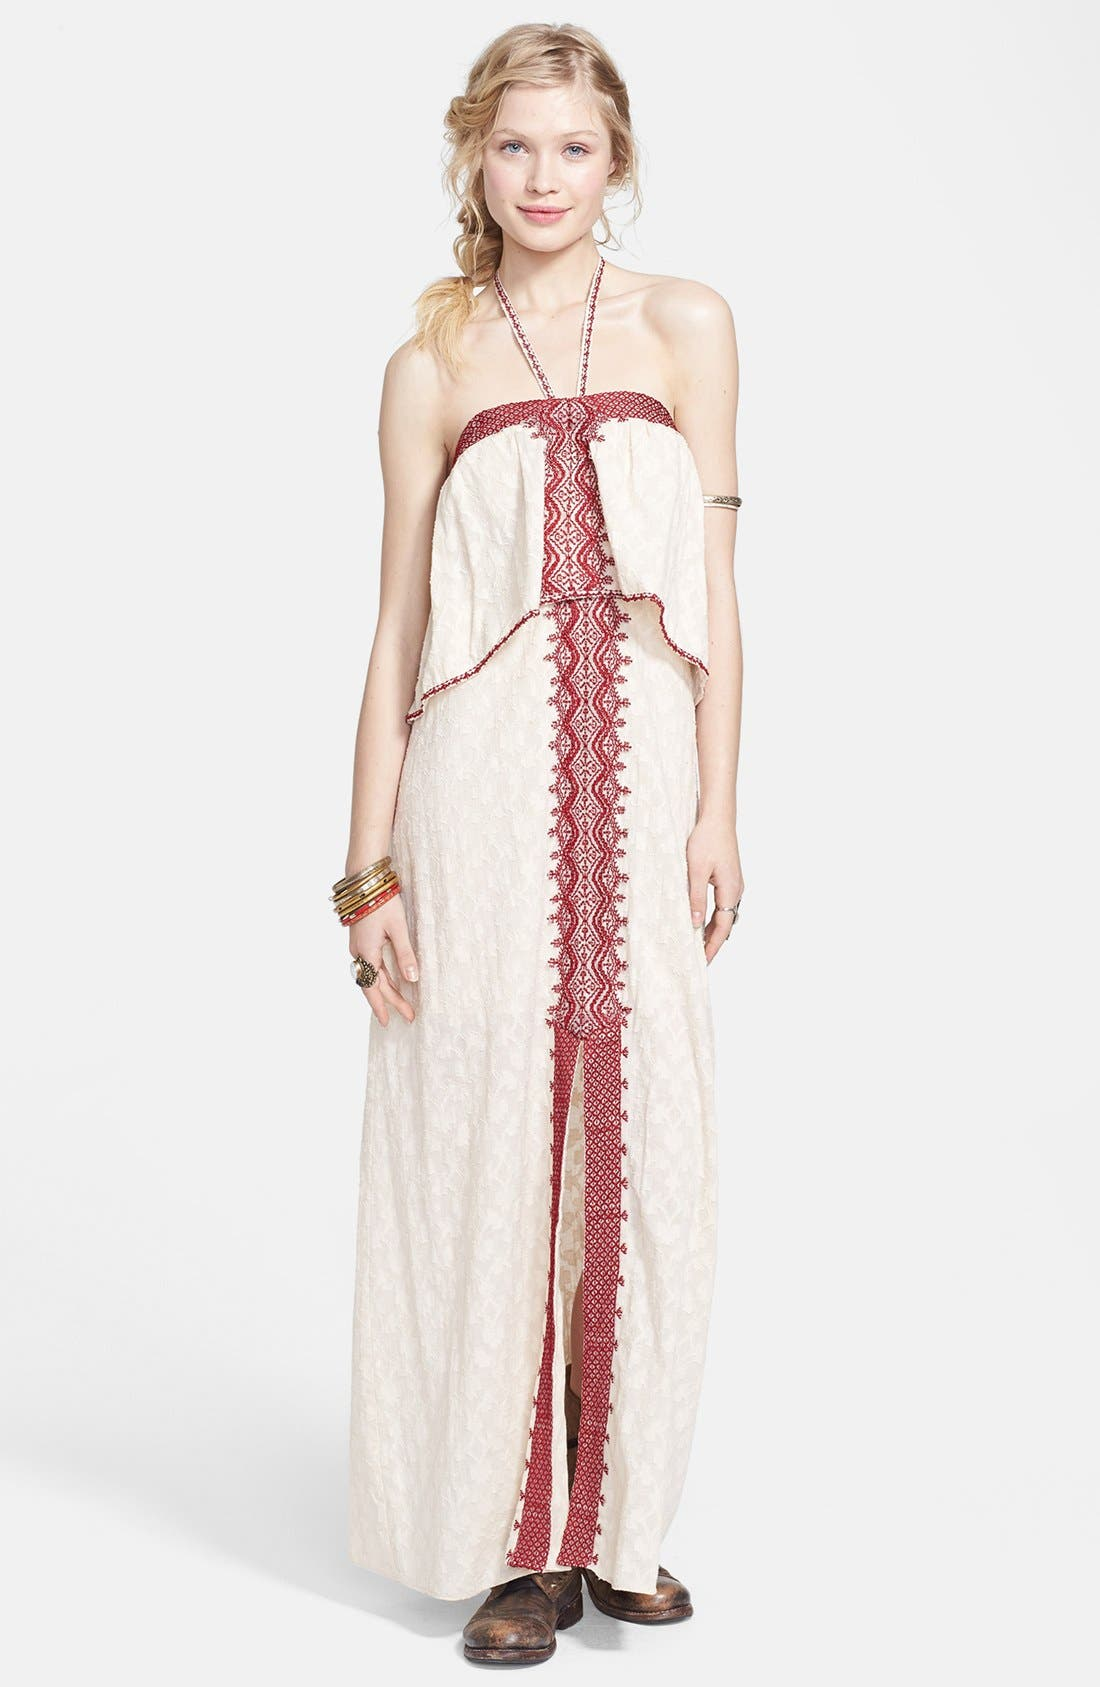 Alternate Image 1 Selected - Free People 'Marrakesh' Lace Trim Jacquard Halter Maxi Dress